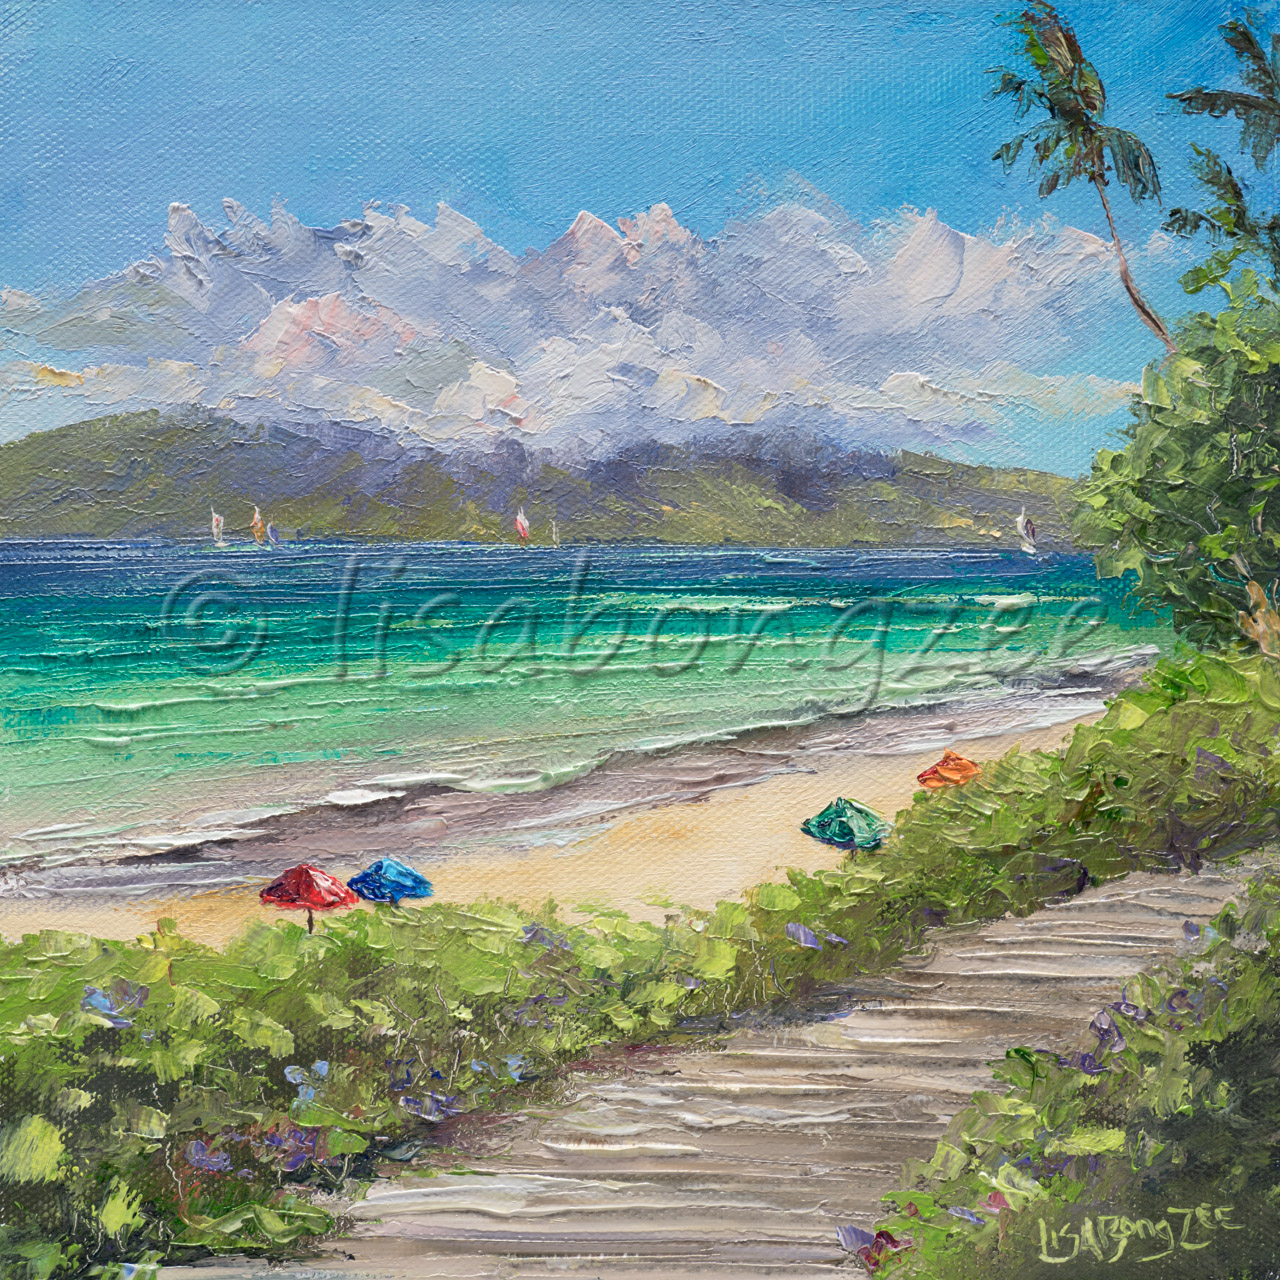 original oil painting beach with colorful umbrellas, teal ocean, beach path lined with plants, and an island in the distance with clouds